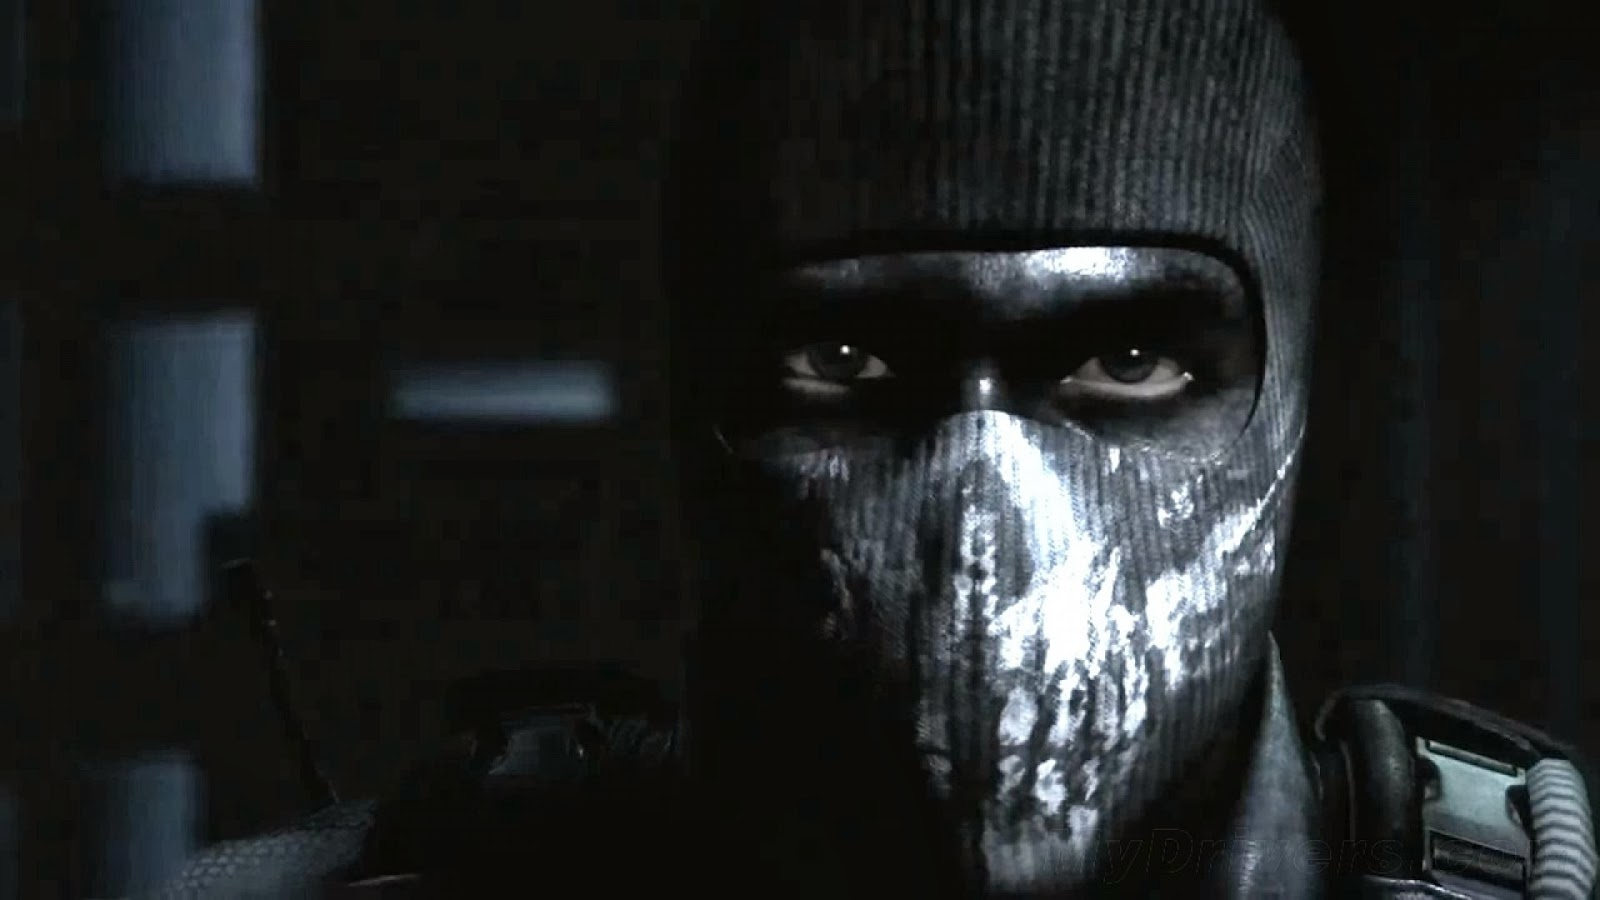 call of duty ghosts 2 hd wallpapers walls720